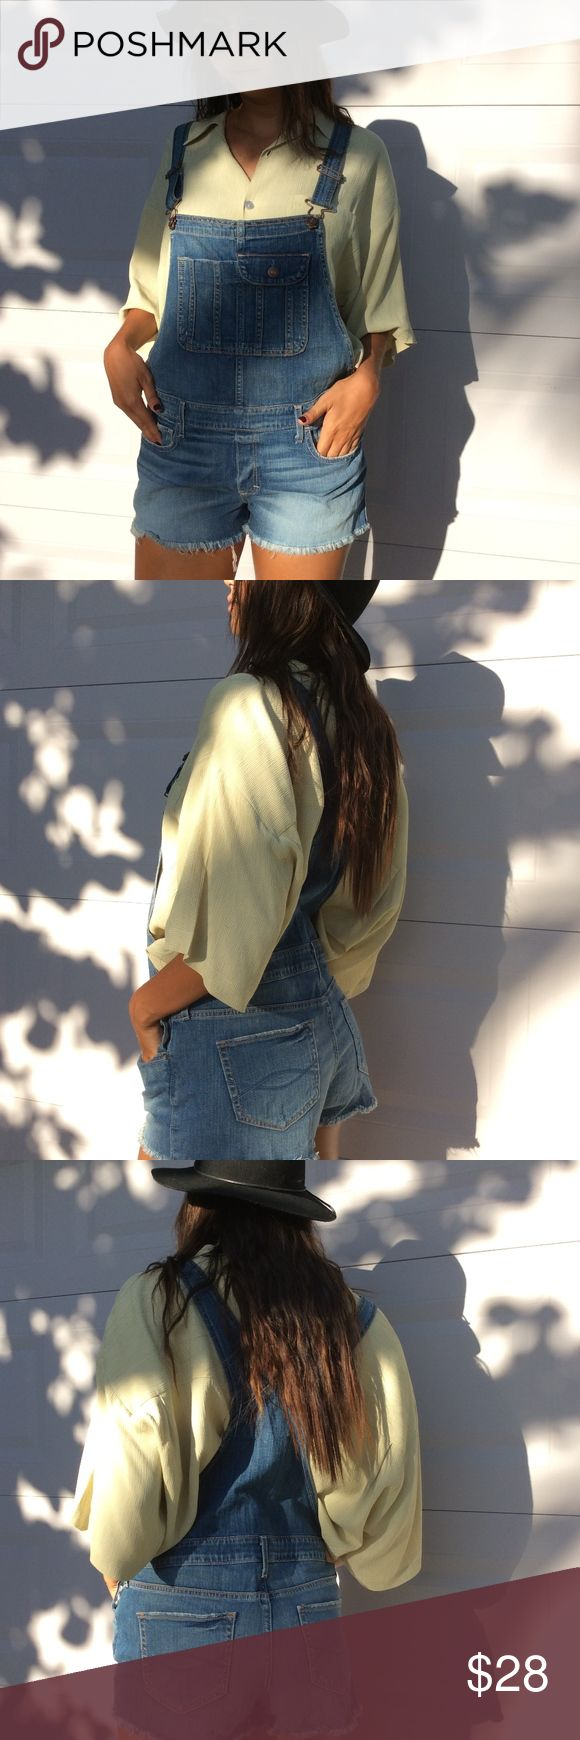 Abercrombie & Fitch Denim Overalls Worn once // cut off shorts with fringe // pockets on the top // it fits amazing! Fits tighter if you have a bigger butt (like me) would fit looser and more of a boyfriend overall if you are smaller like the model :) ~~ worn with oversized green shirt found on my closet~~ Abercrombie & Fitch Jeans Overalls